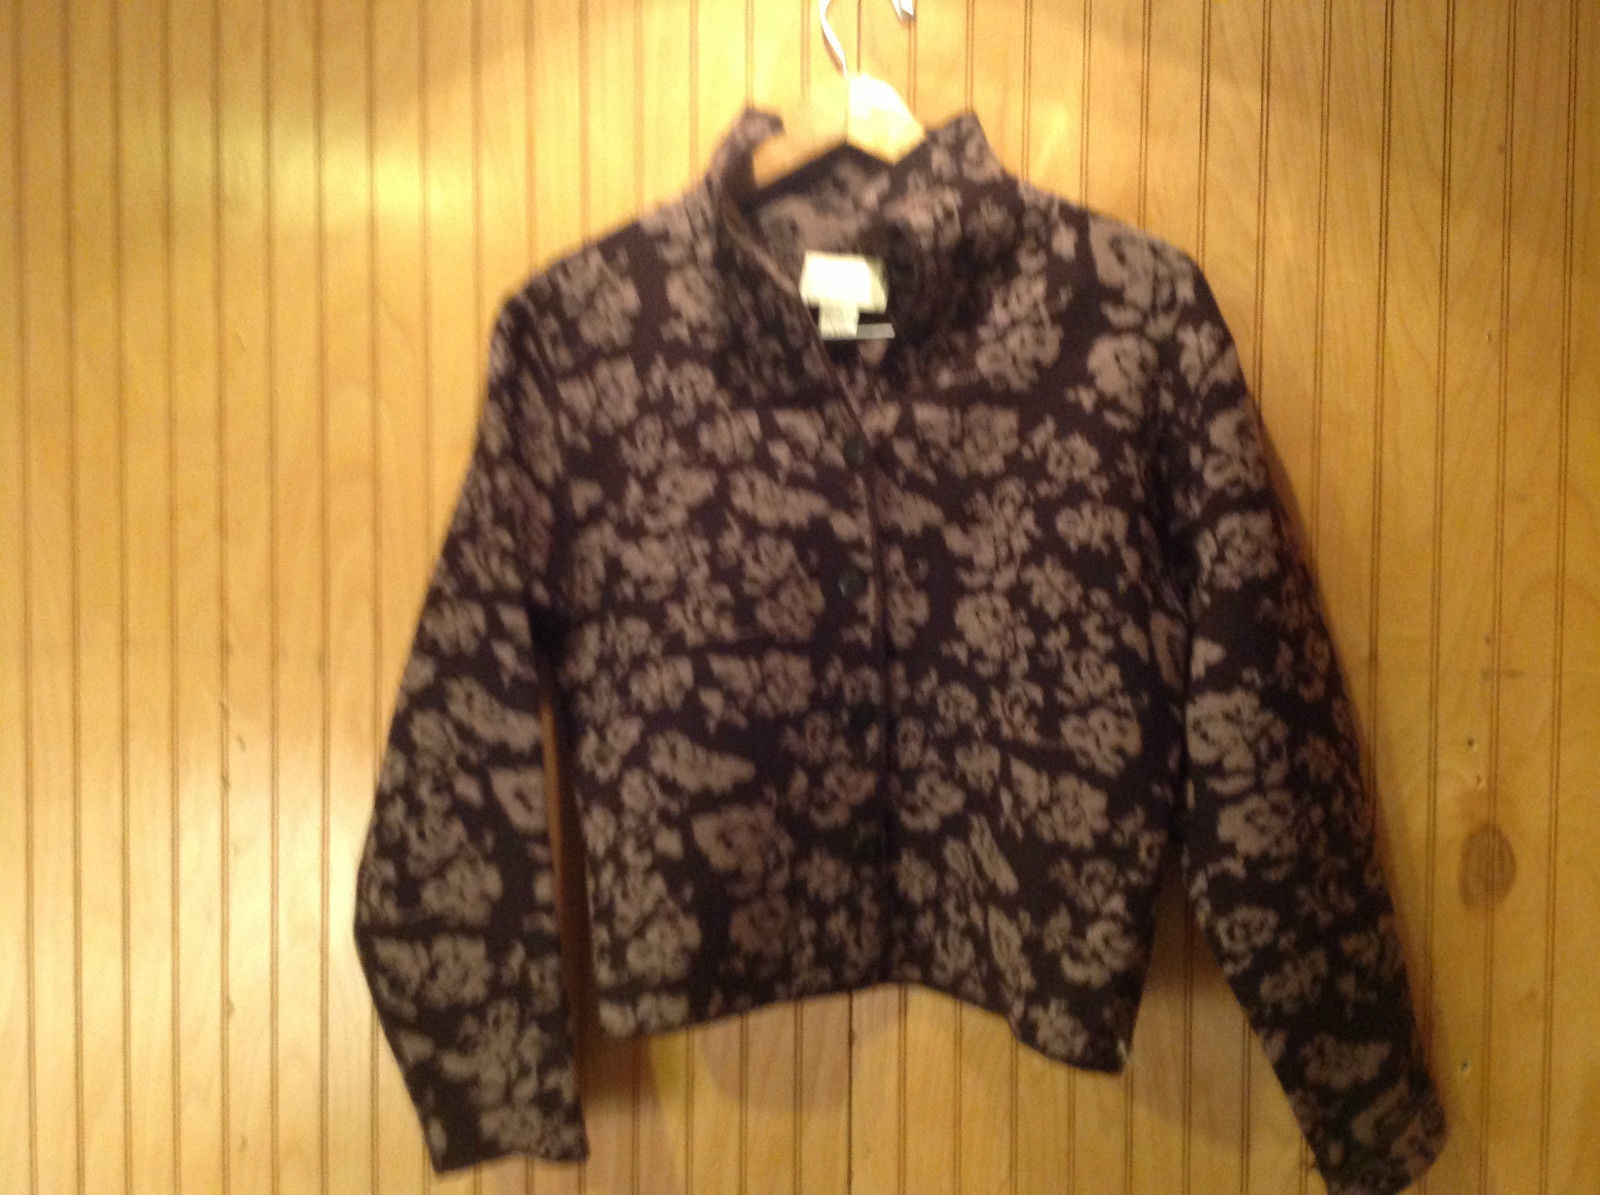 100 Percent Merino Wool Field Manor Purple Floral Design Jacket Size Medium